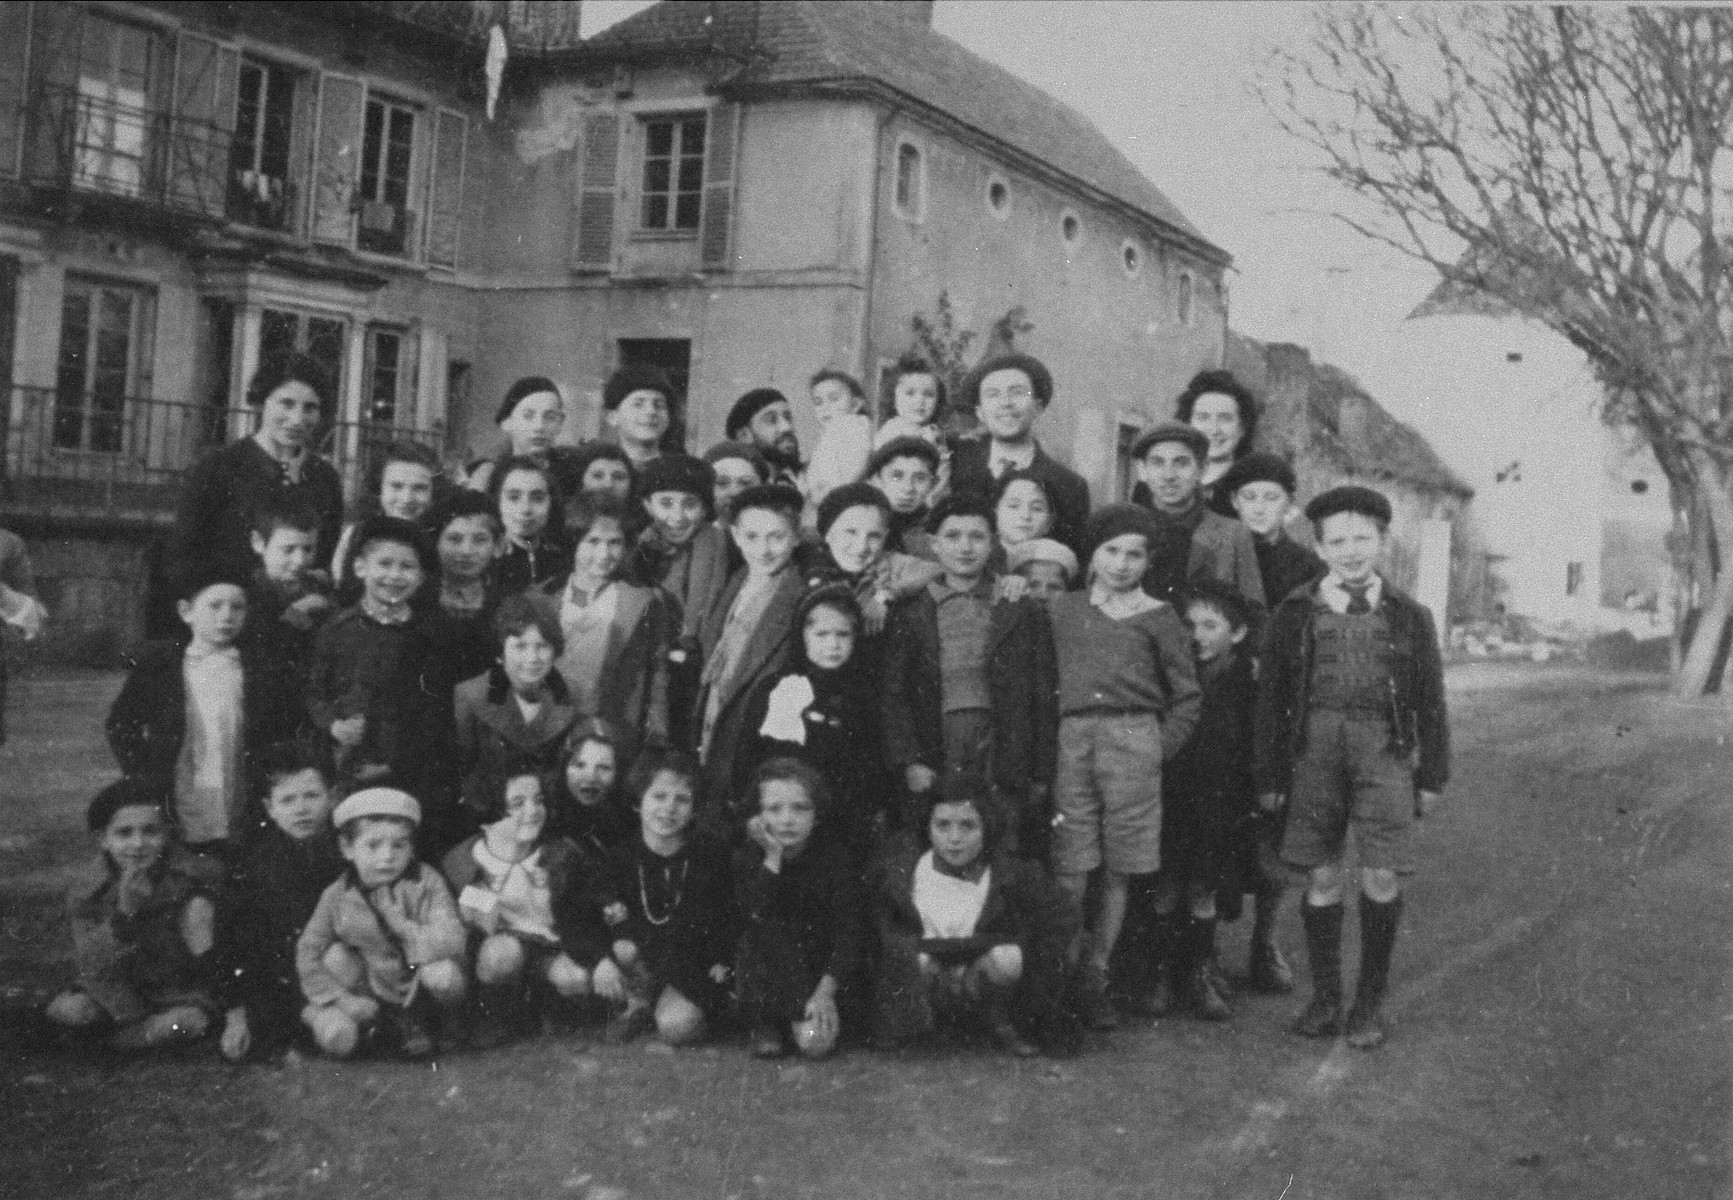 Group portrait of Jewish children outside the Château des Morelles children's home.  The home is sponsored by the OSE (Oeuvre de secours aux Enfants).    Siegfried Weissmann is pictured standing in front of the woman on the right.   Otto Herskovic is also pictured among the children.